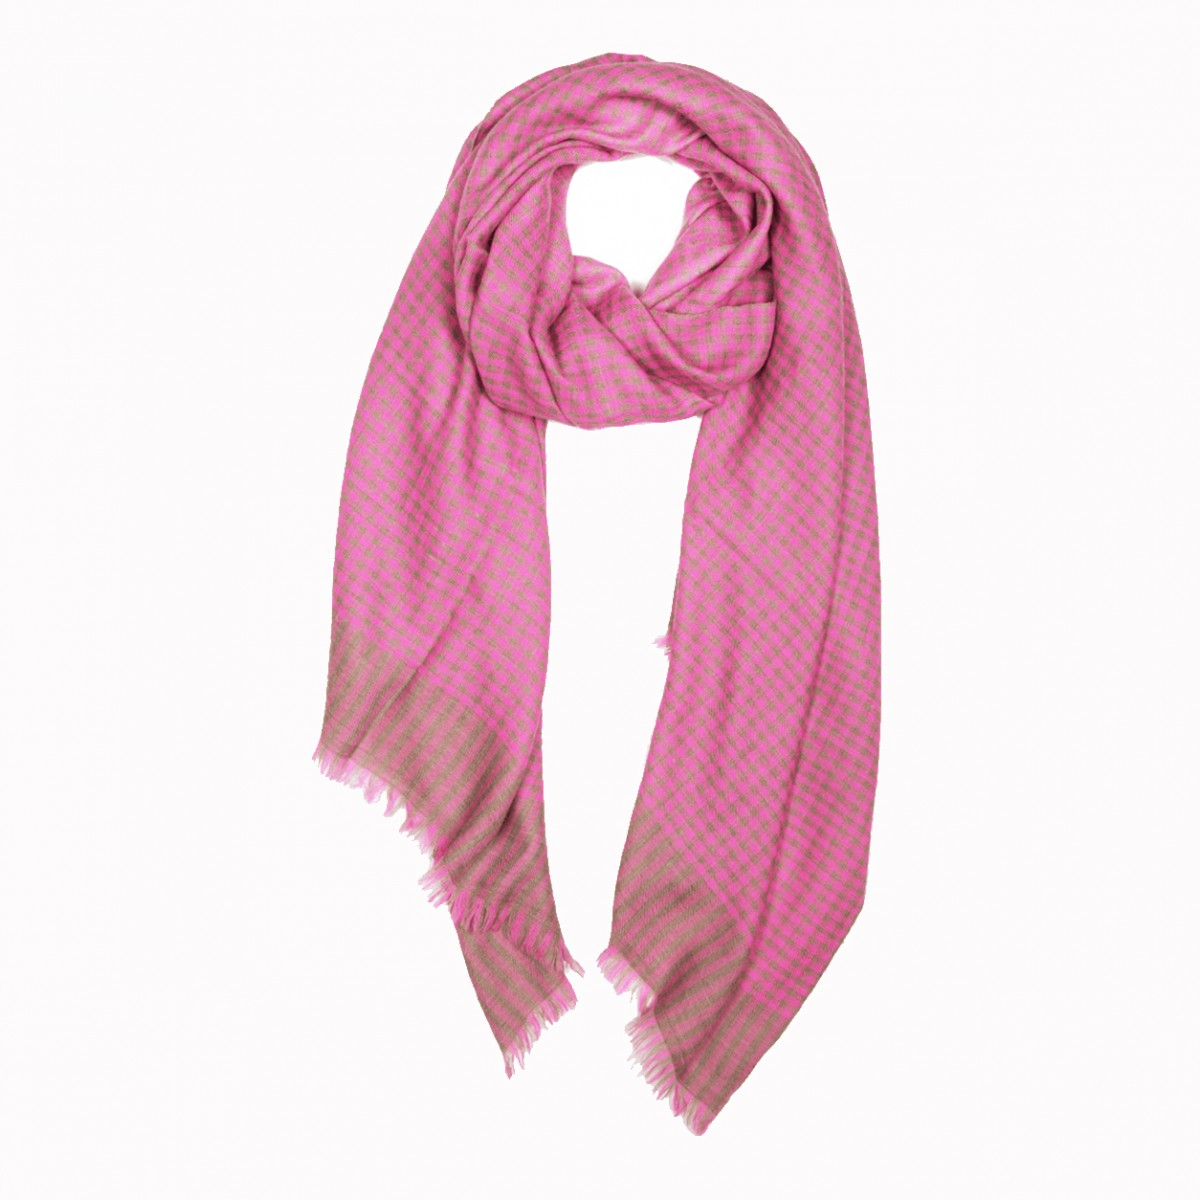 Pattern Elias Pashmina Stole - Natural and Pink